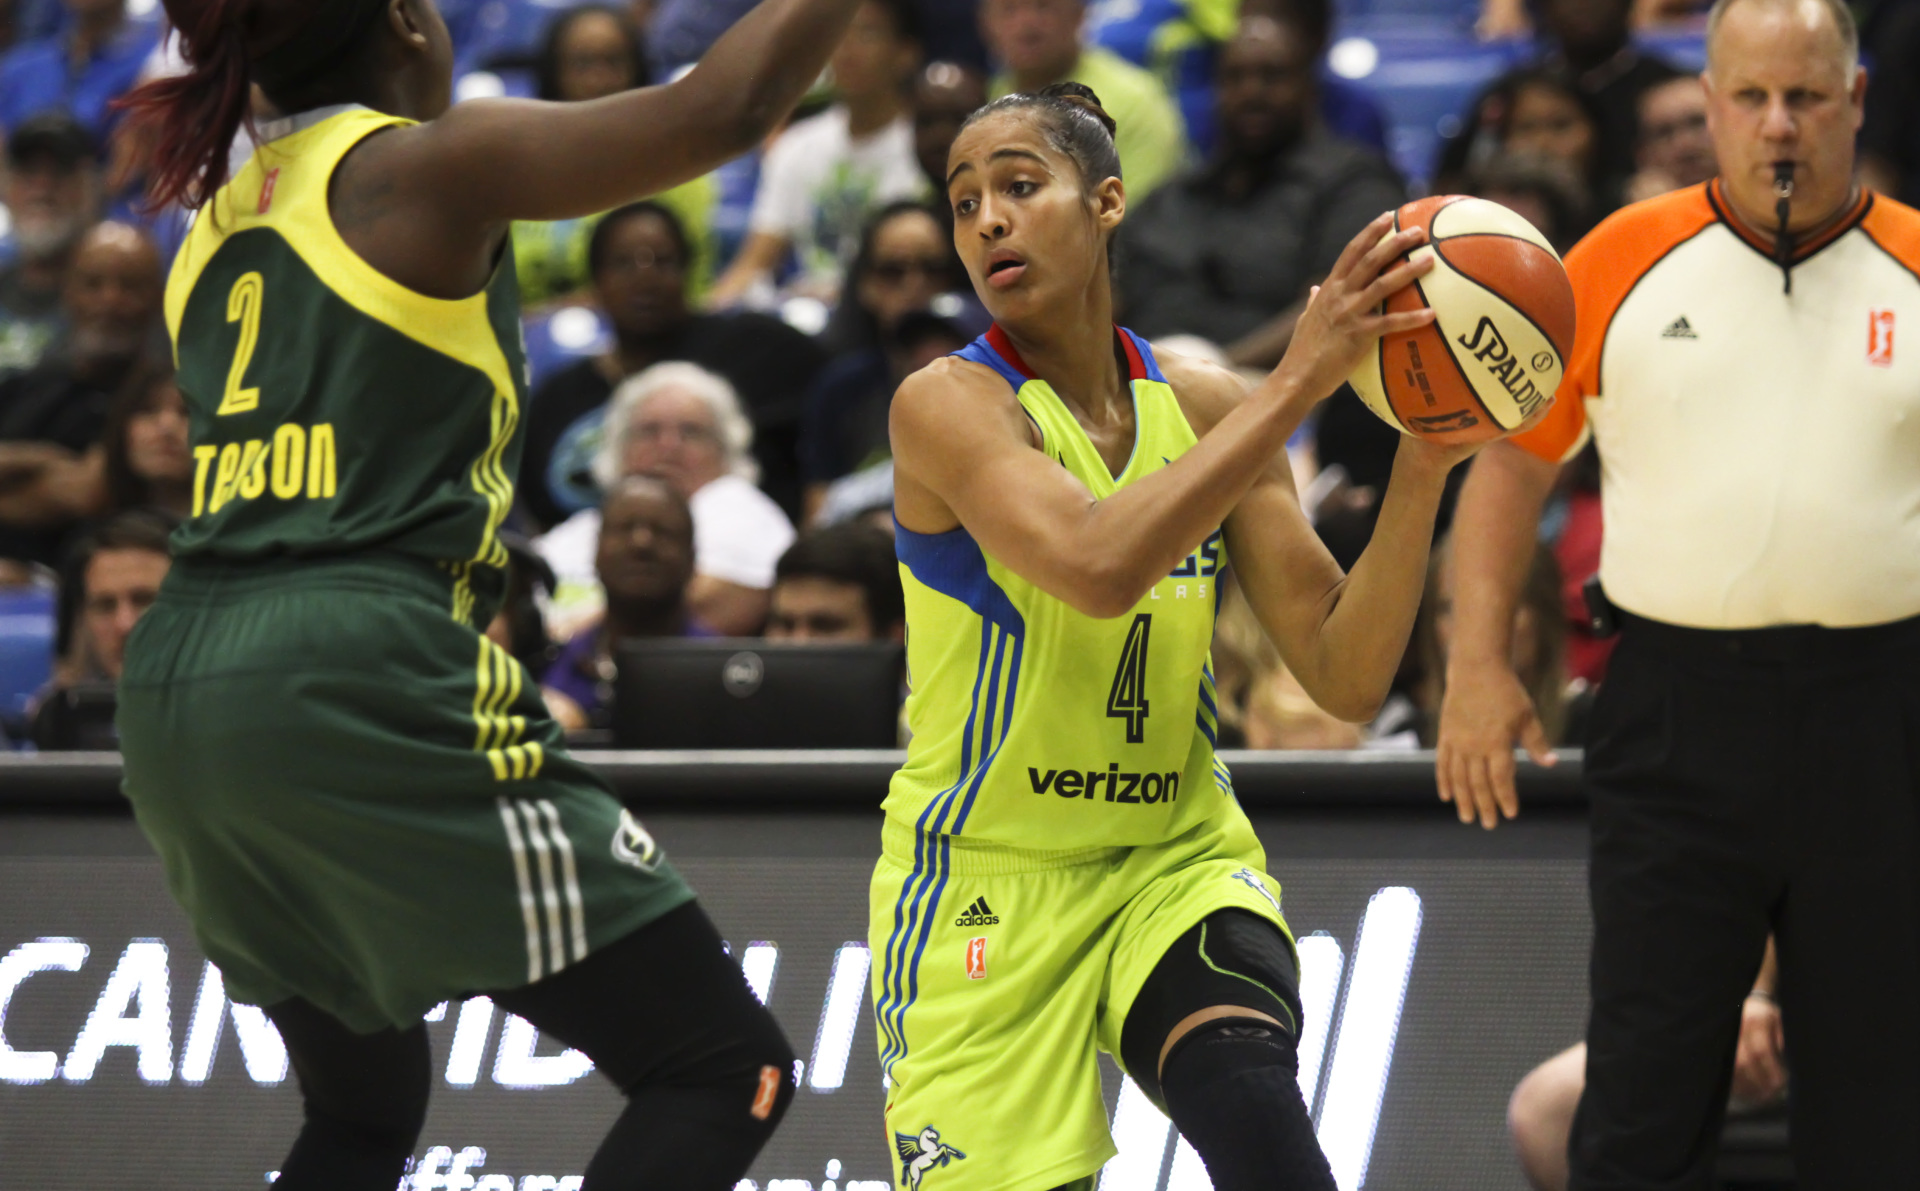 August 4, 2017 - Arlington, TX - The Dallas Wings' Skylar Diggins-Smith tries to pass the ball in the game between the Dallas Wings and Seattle Storm. (Anthony Mazur/AM News Net)